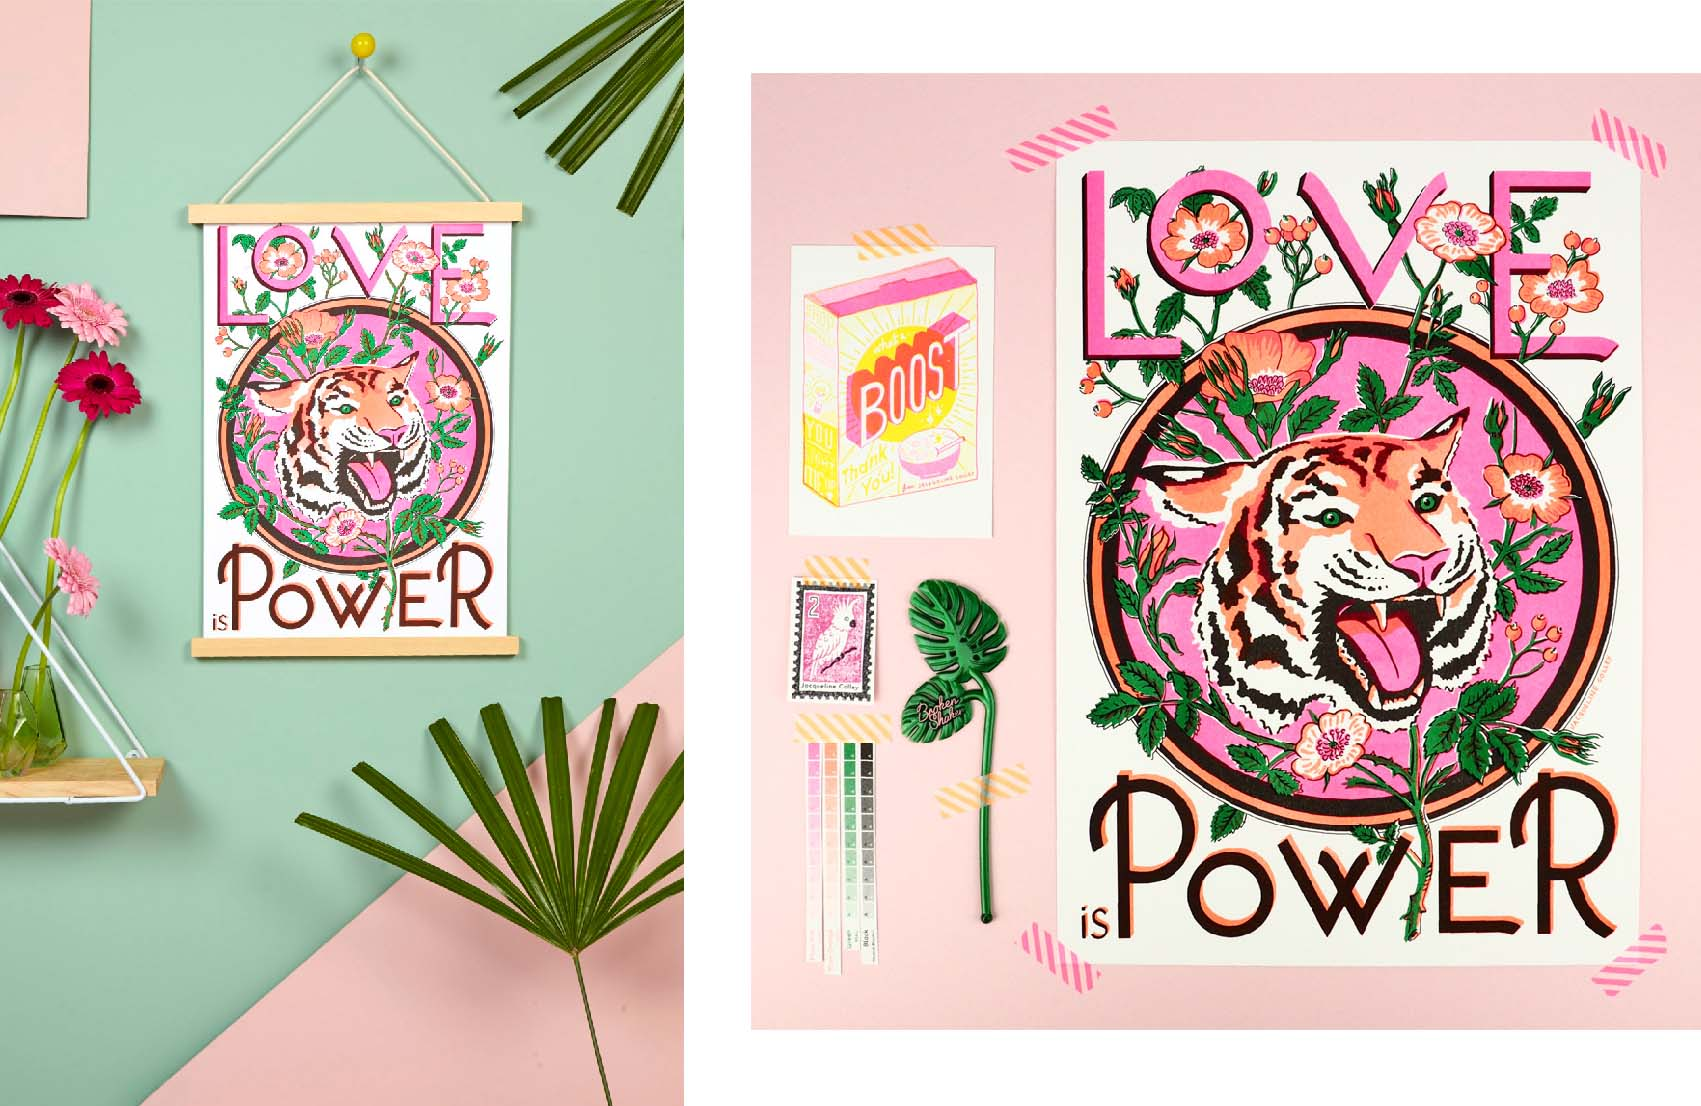 Love-Is-Power-Risograph-print-Jacqueline-colley.jpg